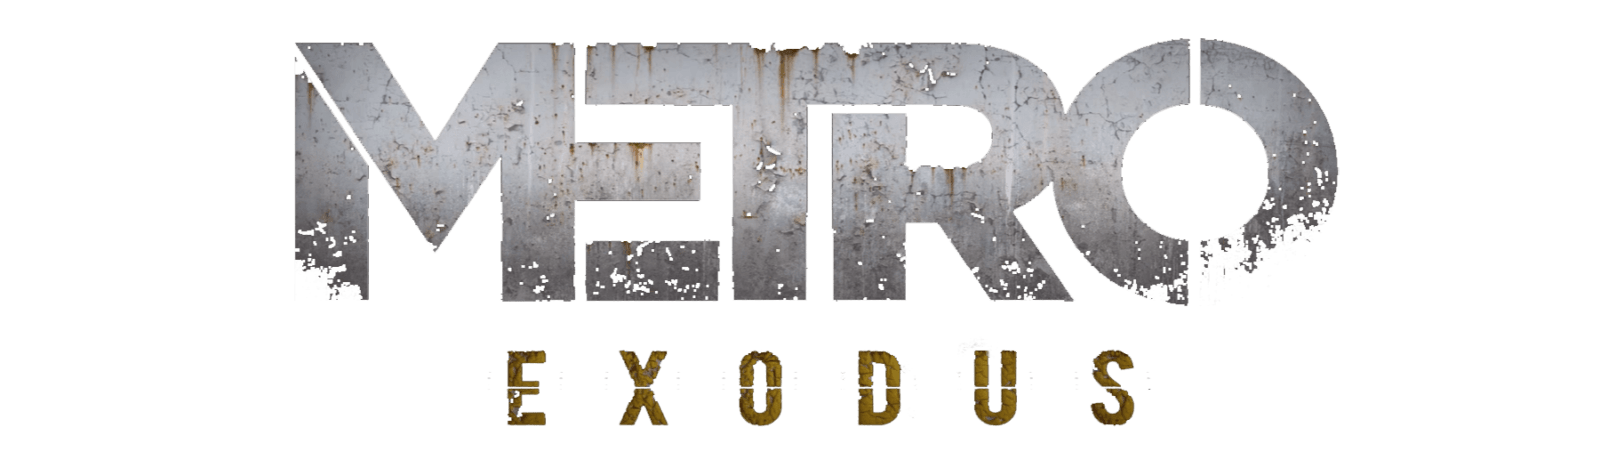 Metro Exodus Logo - Metro: Exodus – Xbox One Controls : MGW: Game Cheats, Cheat Codes ...